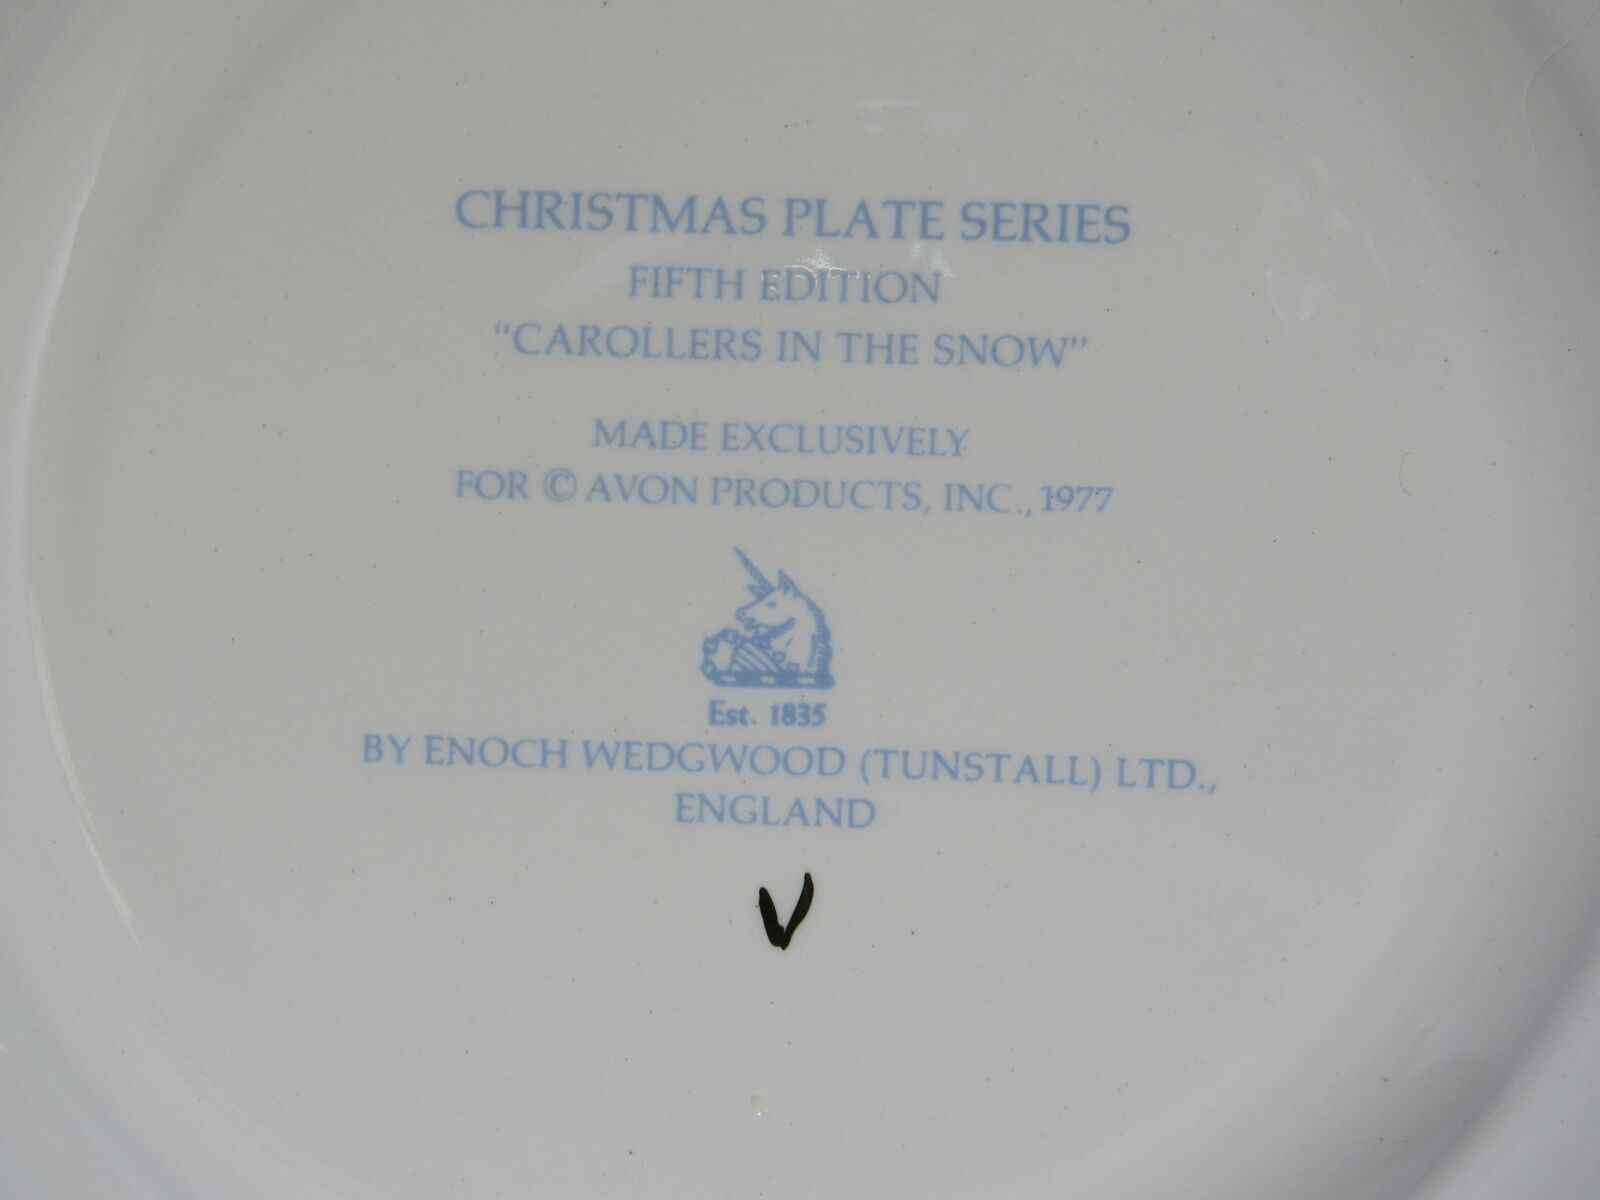 1977 Avon Christmas Plate Series Fifth Edition Carollers in the Snow in Box vtg image 4